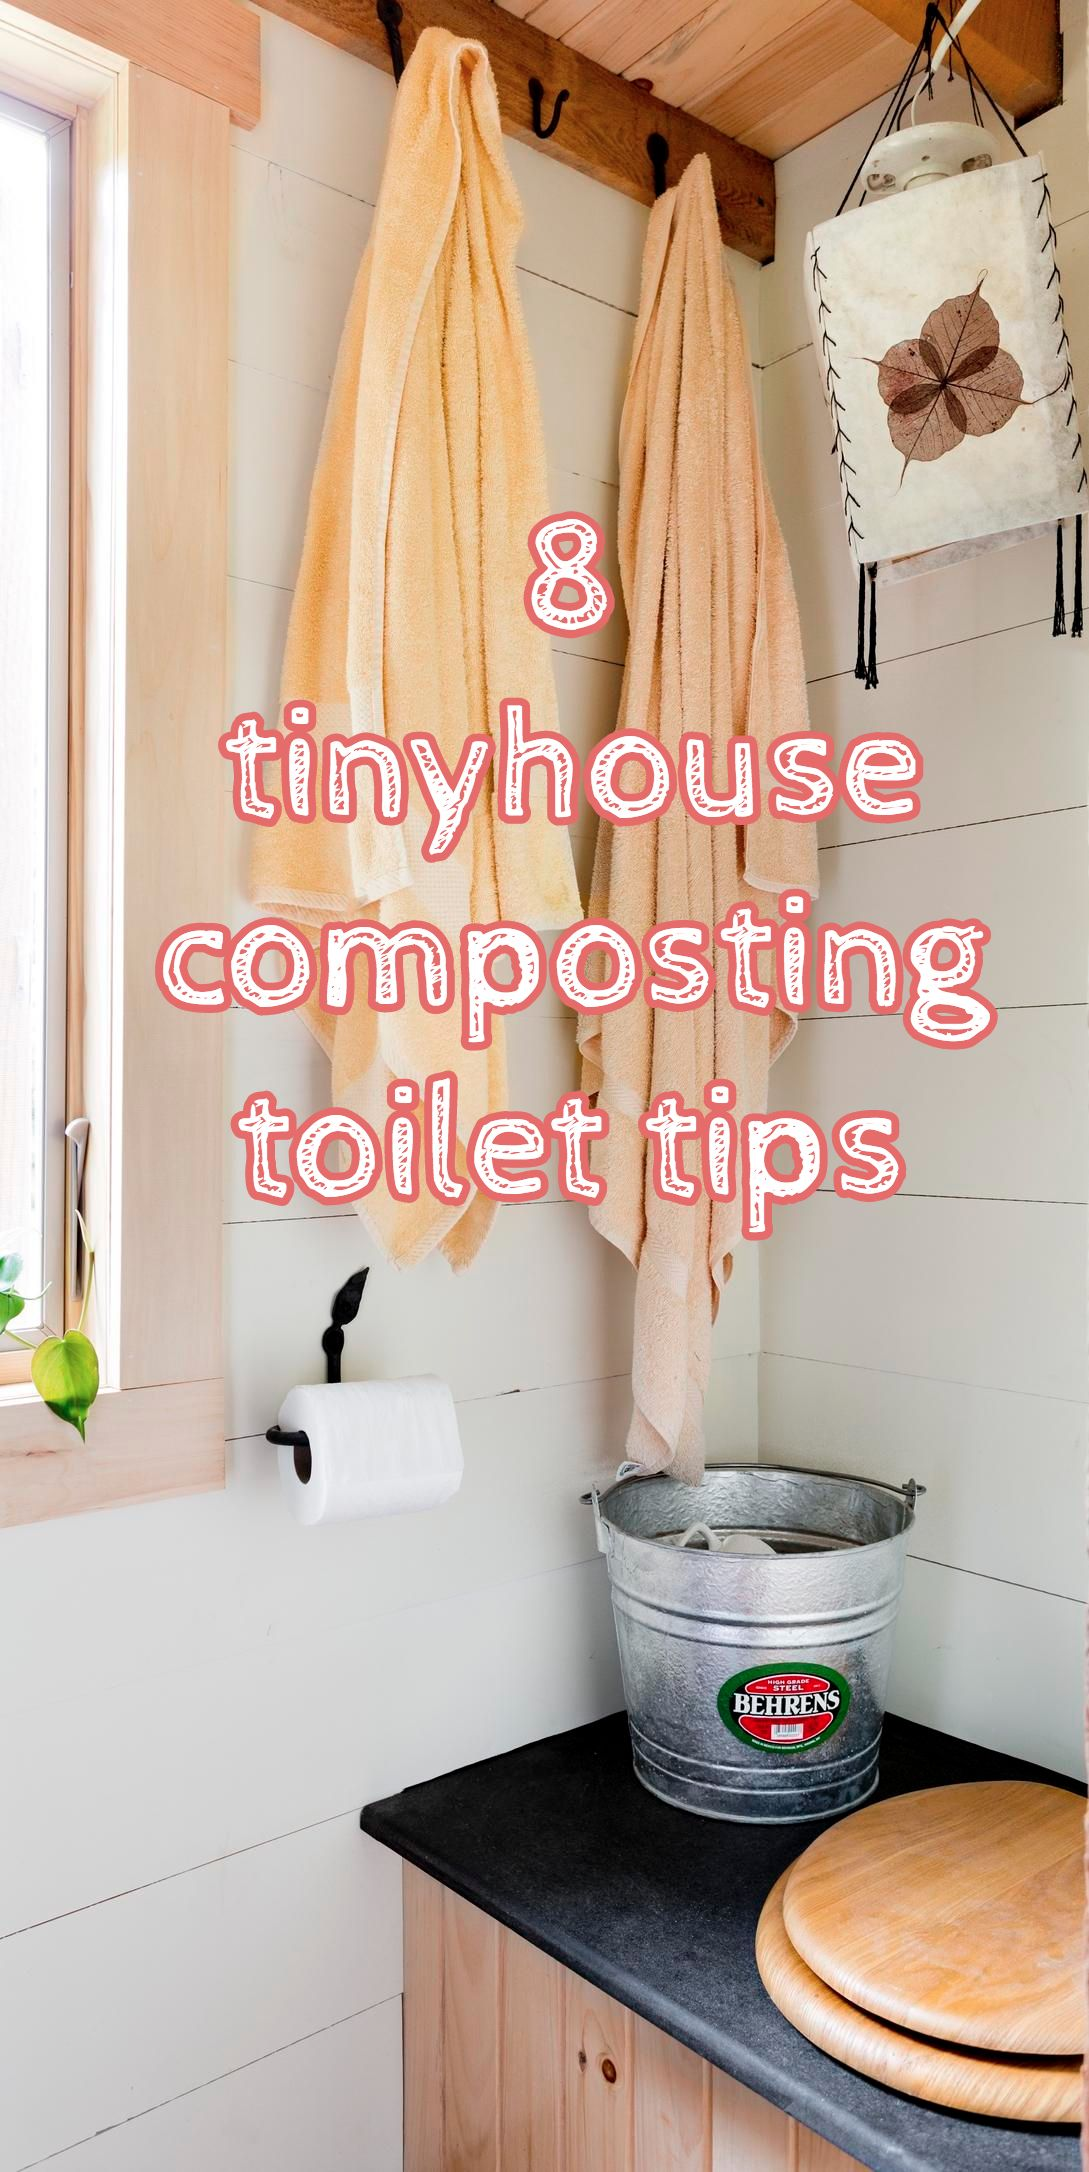 8 composting toilet tips for happy tiny house living composting